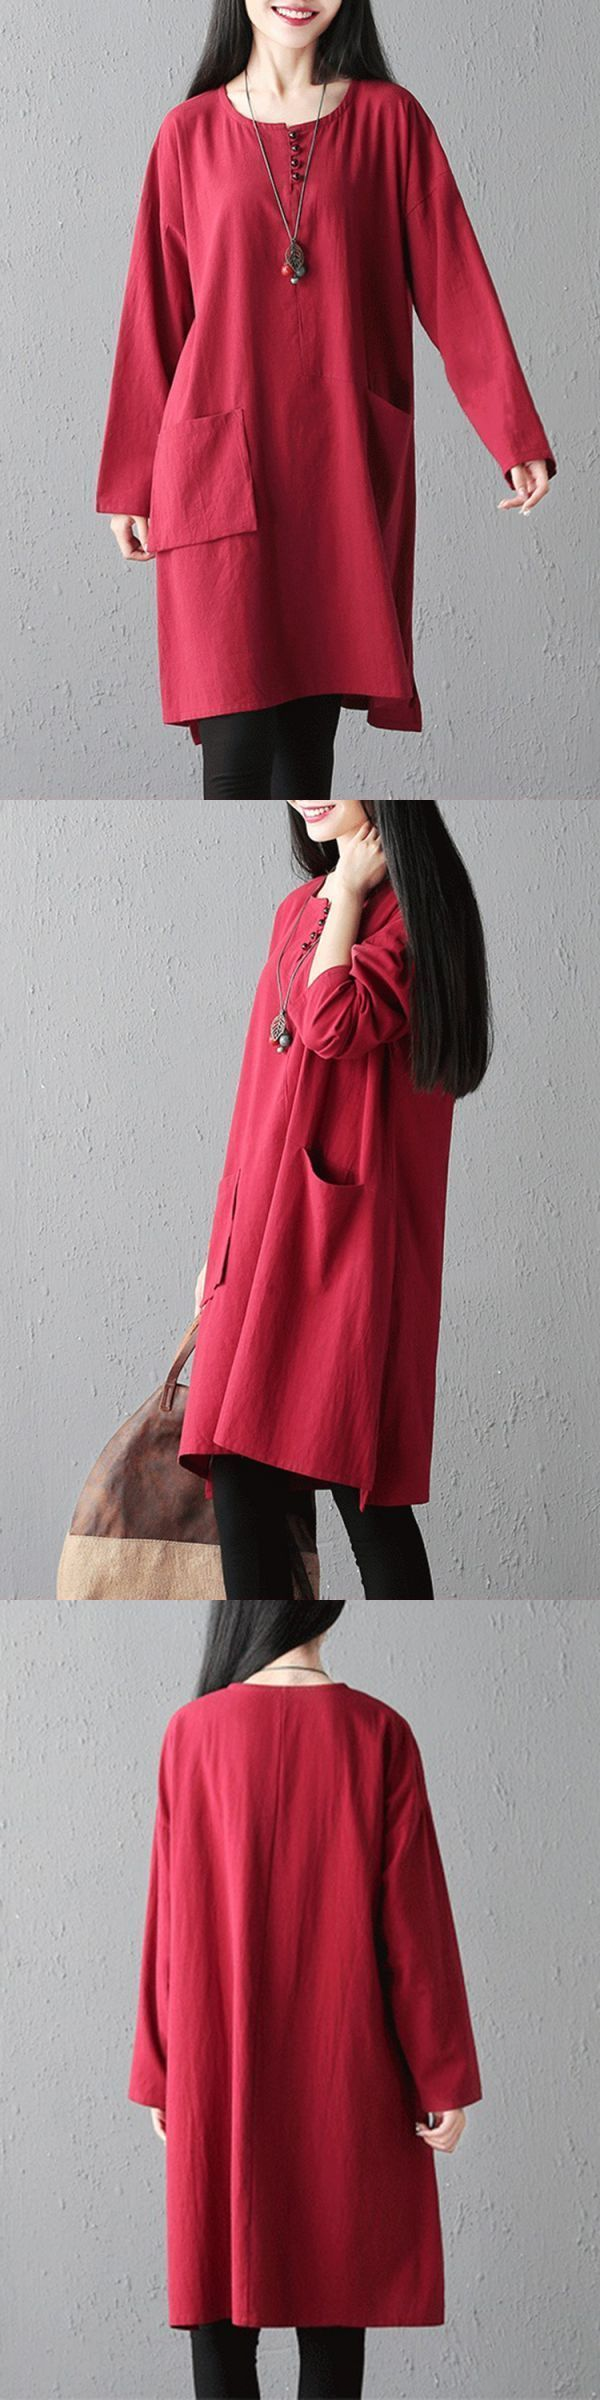 Casual dresses river island casual loose solid color long sleeve pockets women dress #casual #dresses #for #juniors #forever #21 #casual #dresses #in #pakistan #2017 #images #of #casual #dresses #2014 #images #of #casual #dresses #2015